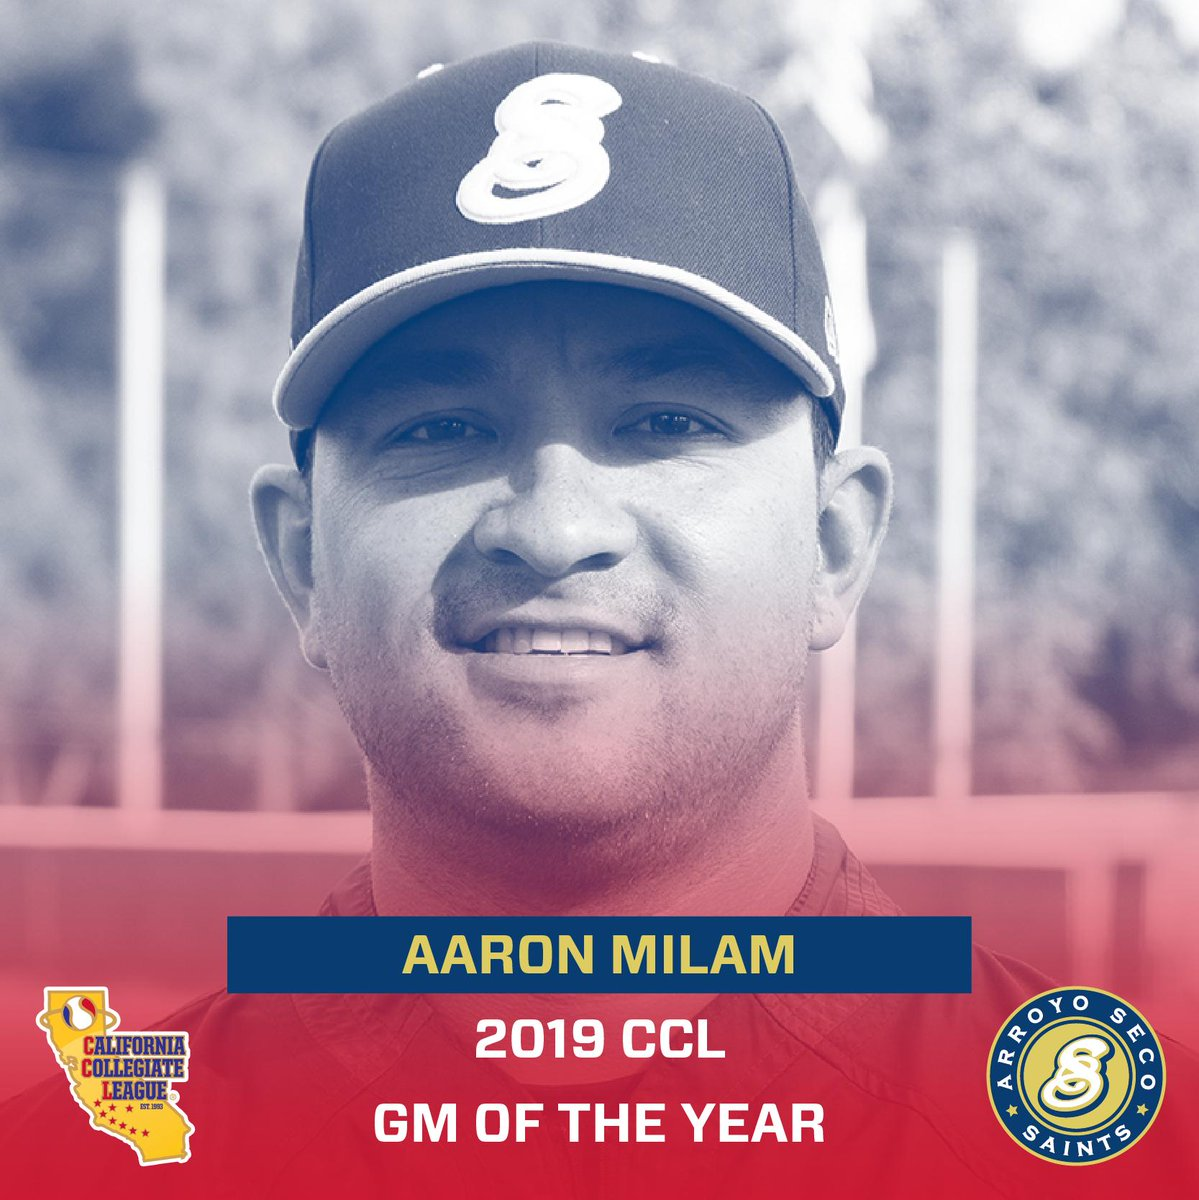 The Arroyo Seco Saints' Aaron Milam is named the 2019 @CCL_Baseball General Manager of the Year‼️  #SaintsOfSummer  @campadresports @James_Escarcega @CollegeSummerBB @CB_Daily @CBNewspaper @PasStarNews @ePasadenaNow @Outlook_Sports @Mr_Pasadena https://t.co/RwiHZJrbiU